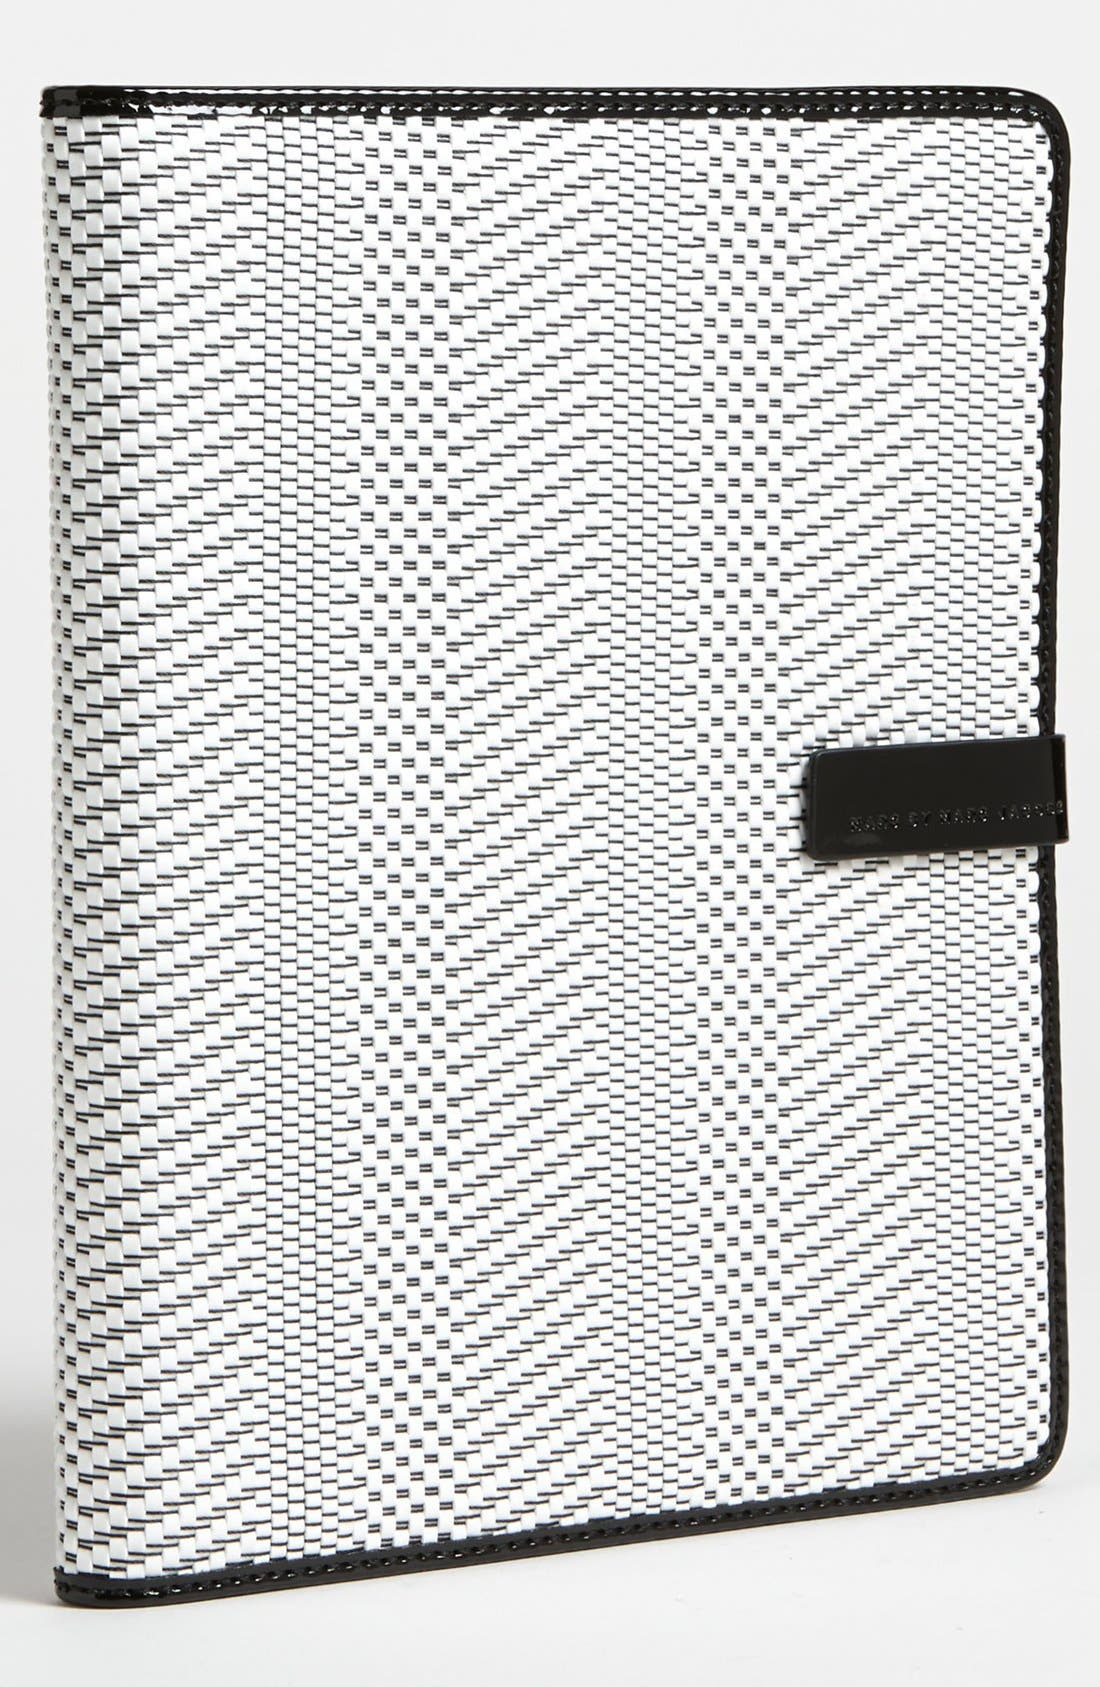 Alternate Image 1 Selected - MARC BY MARC JACOBS 'Wild Card - Shiny Straw' iPad Case